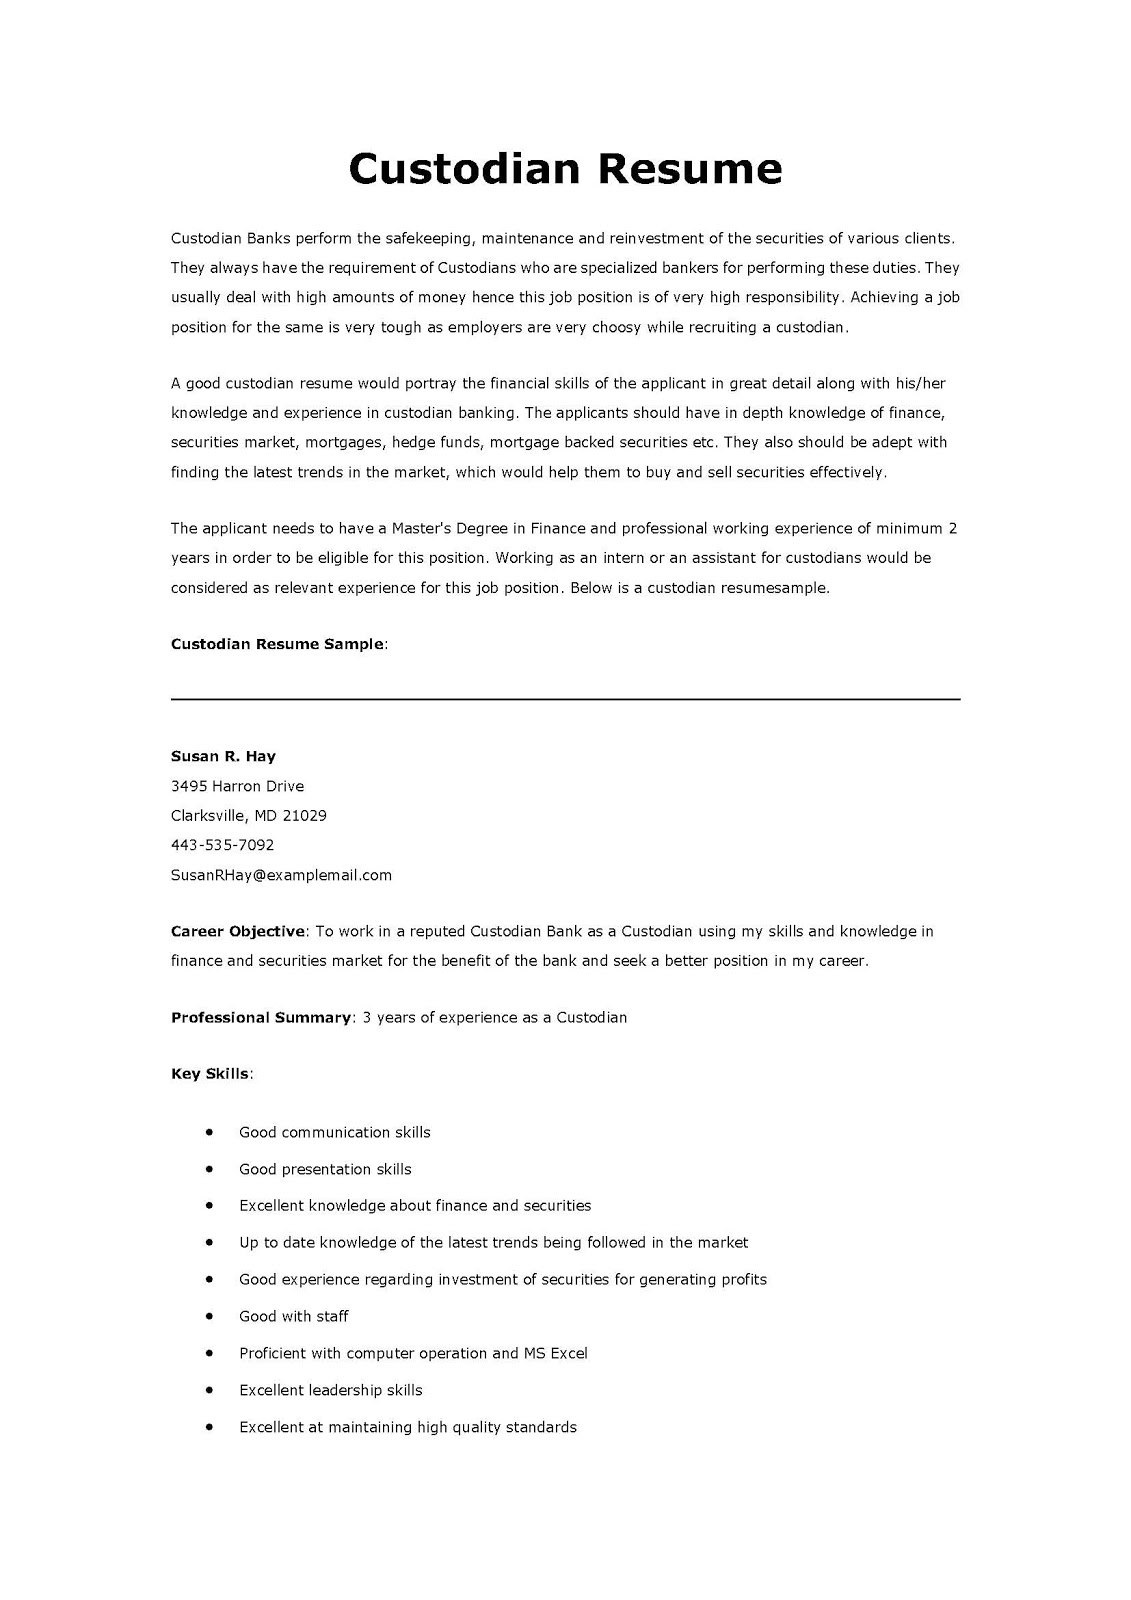 Supervisor Resume Examples 2012 Resume Samples Custodian Resume